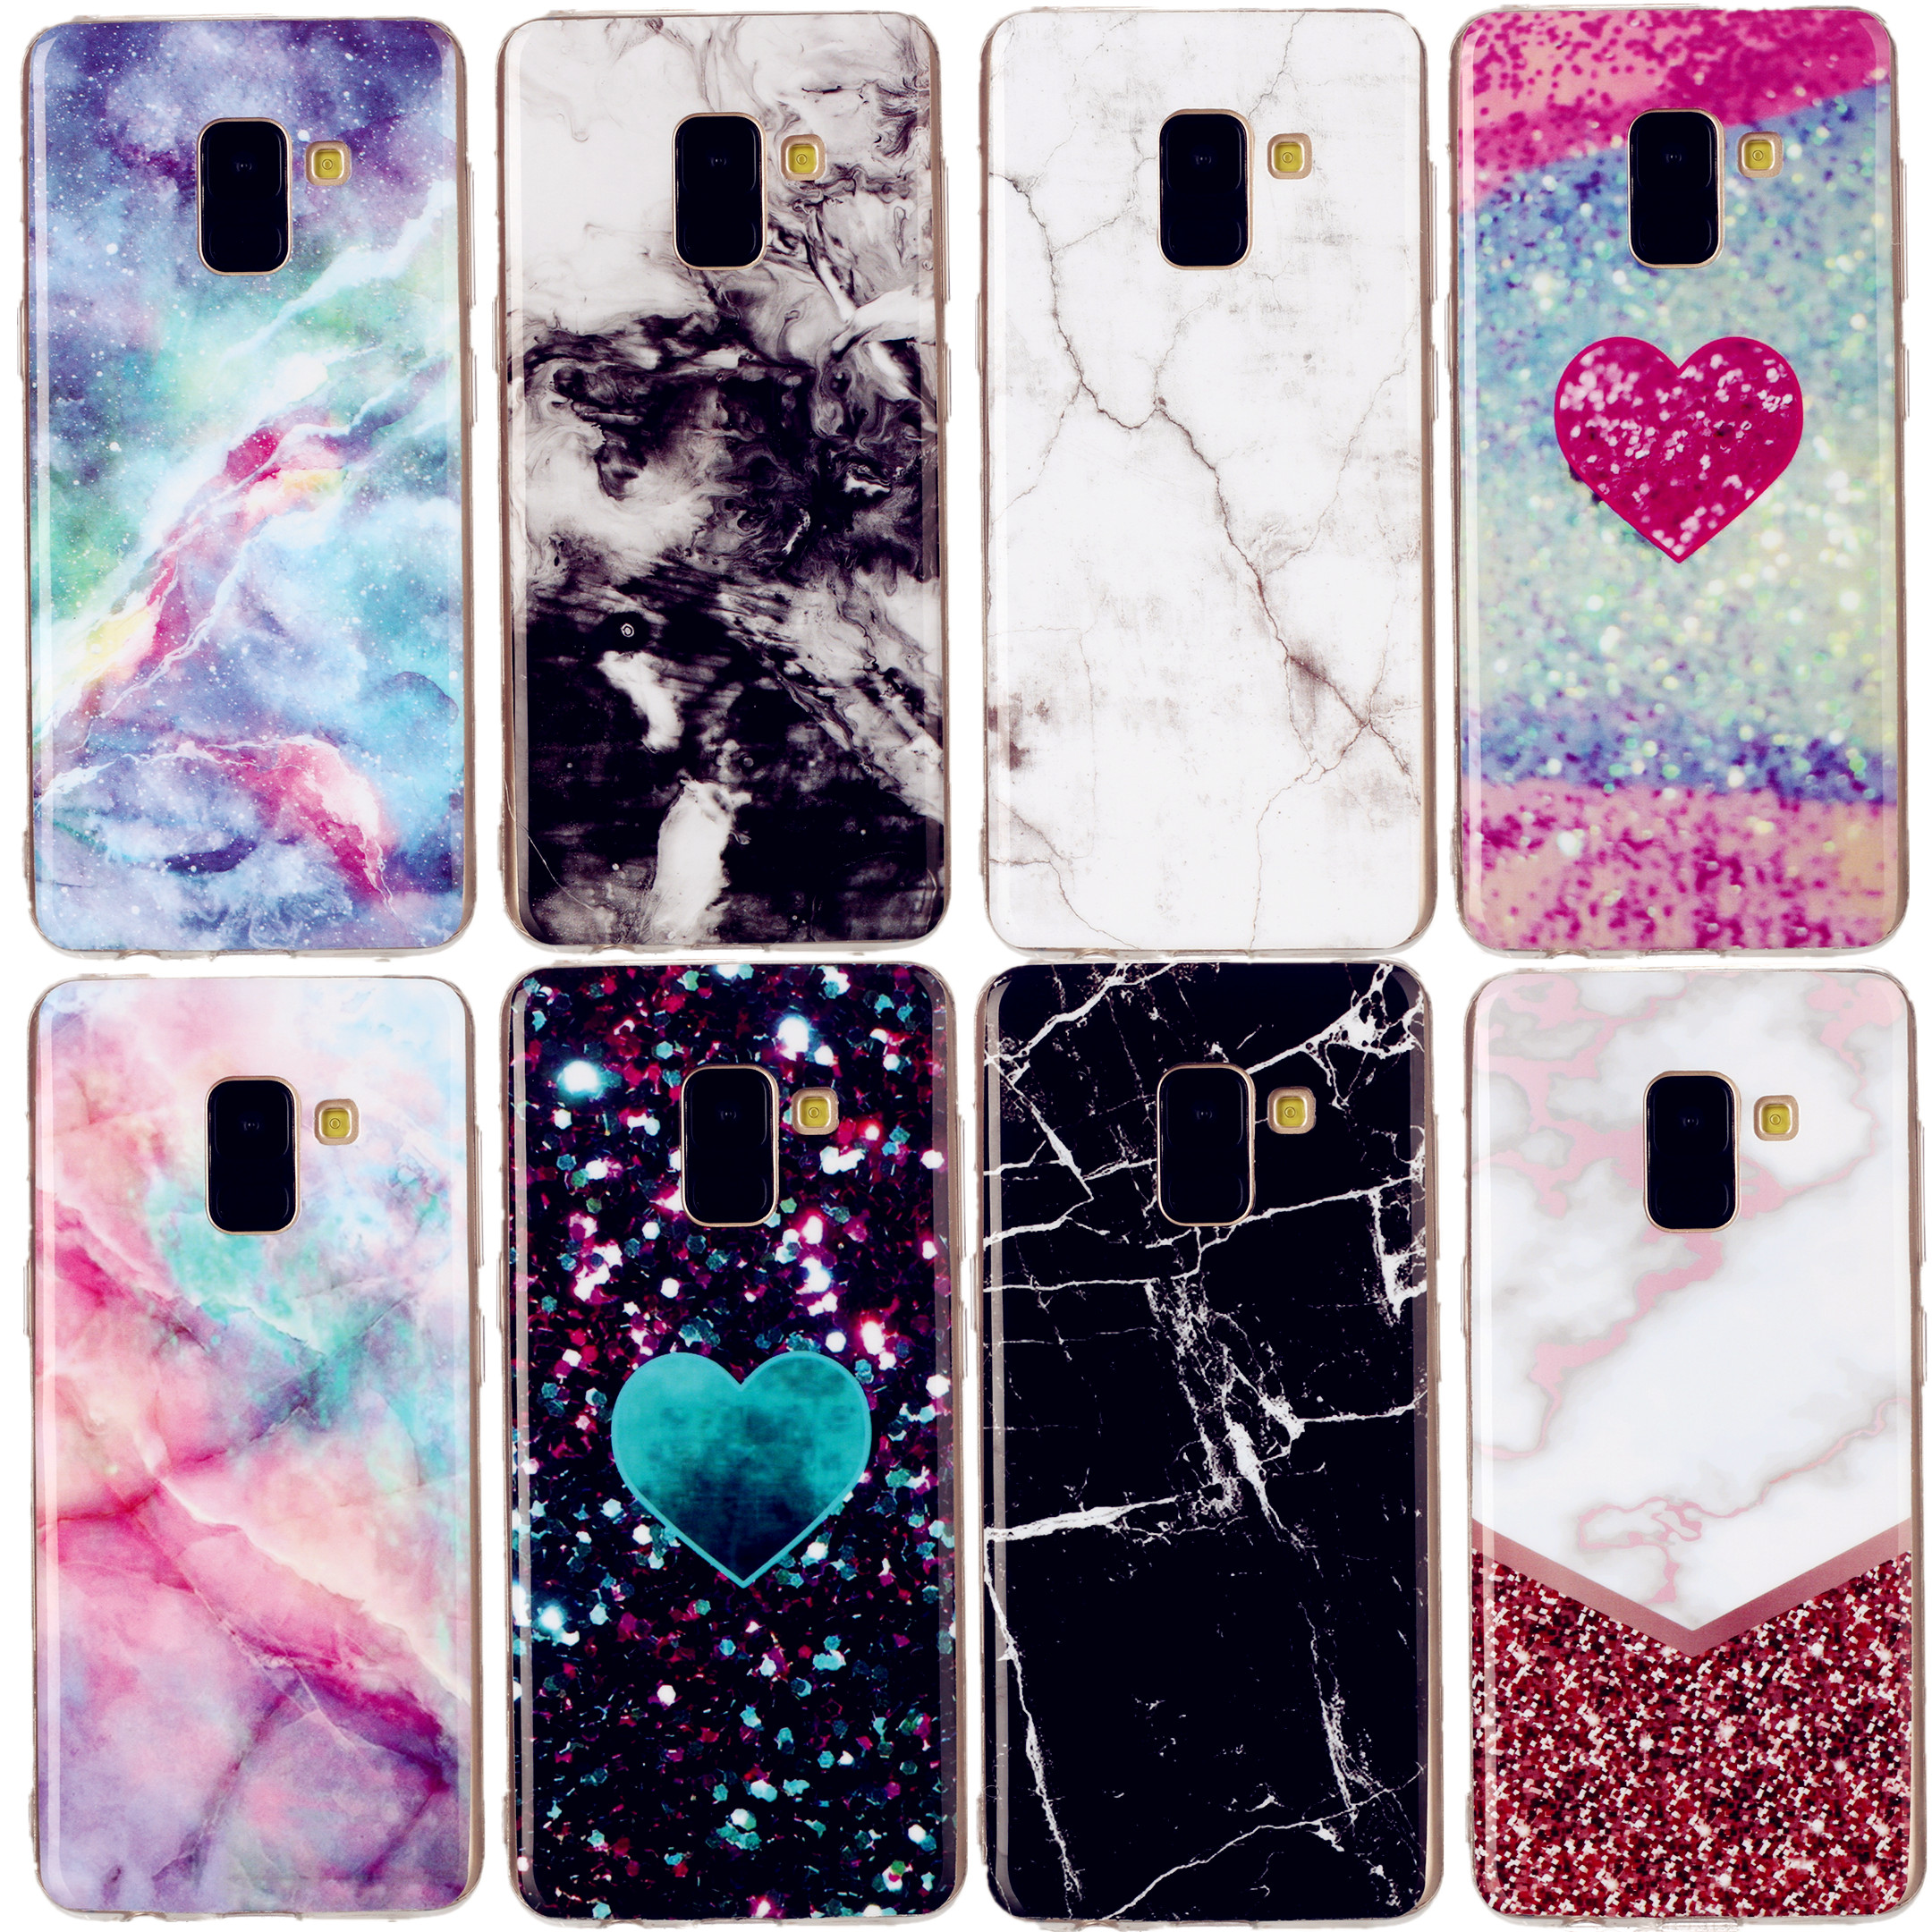 Smooth Marble Case For Samsung Galaxy M10 M20 M30 A62018 <font><b>A82018</b></font> J2prime J32017 J52017 J4PLUS Soft TPU Silicone Back Cover Case image